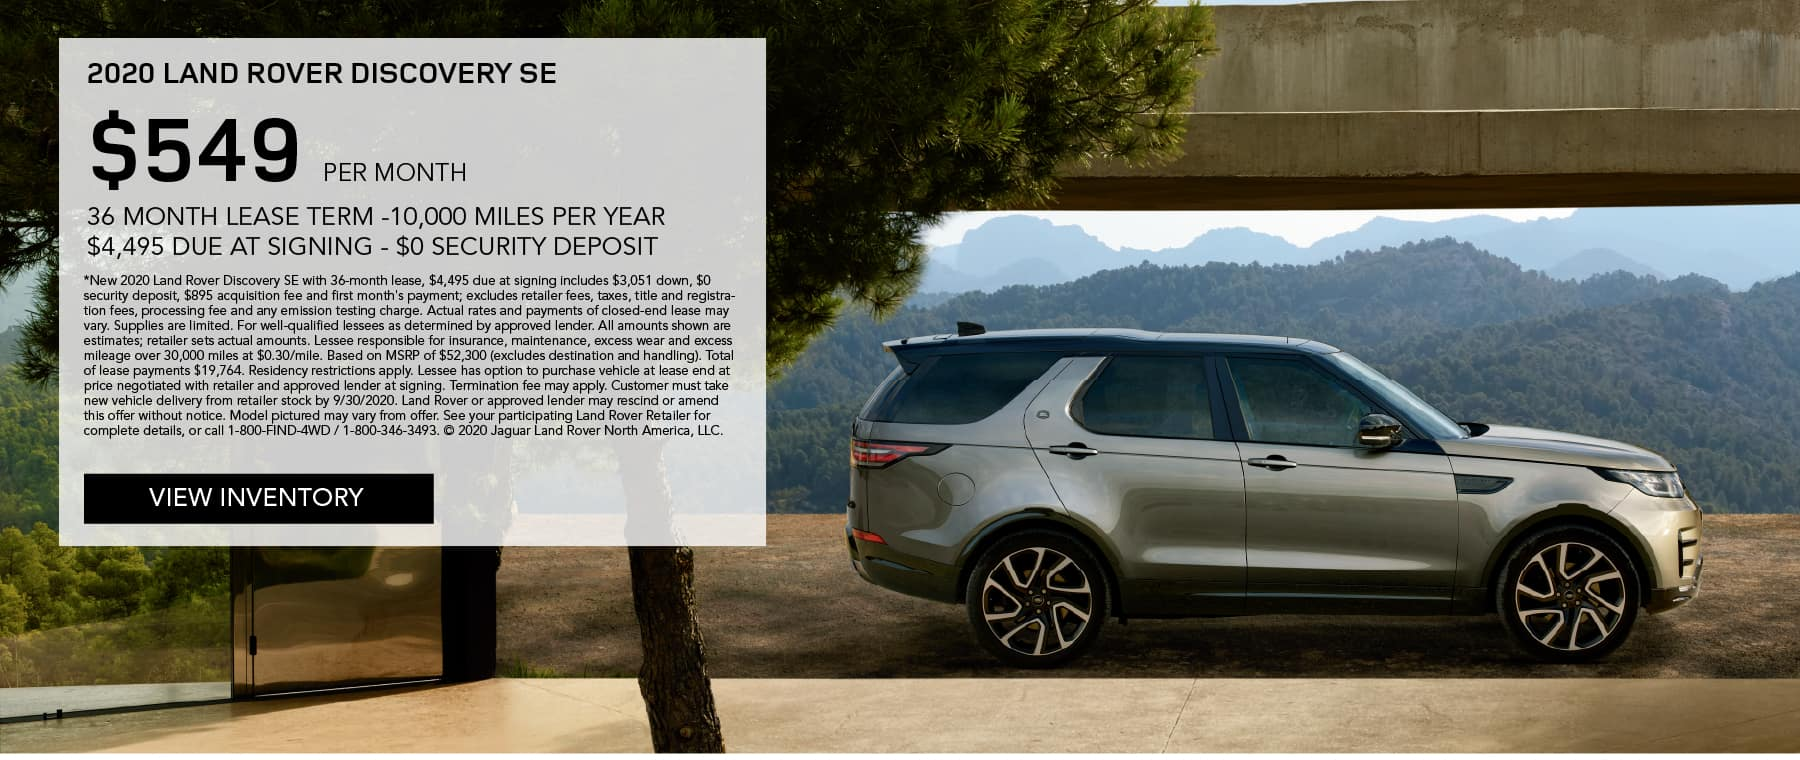 2020 LAND ROVER DISCOVERY SE. $549 PER MONTH. 36 MONTH LEASE TERM. $4,495 CASH DUE AT SIGNING. $0 SECURITY DEPOSIT. 10,000 MILES PER YEAR. EXCLUDES RETAILER FEES, TAXES, TITLE AND REGISTRATION FEES, PROCESSING FEE AND ANY EMISSION TESTING CHARGE. ENDS 9/30/2020. VIEW INVENTORY. SILVER LAND ROVER DISCOVERY PARKED IN DRIVEWAY.